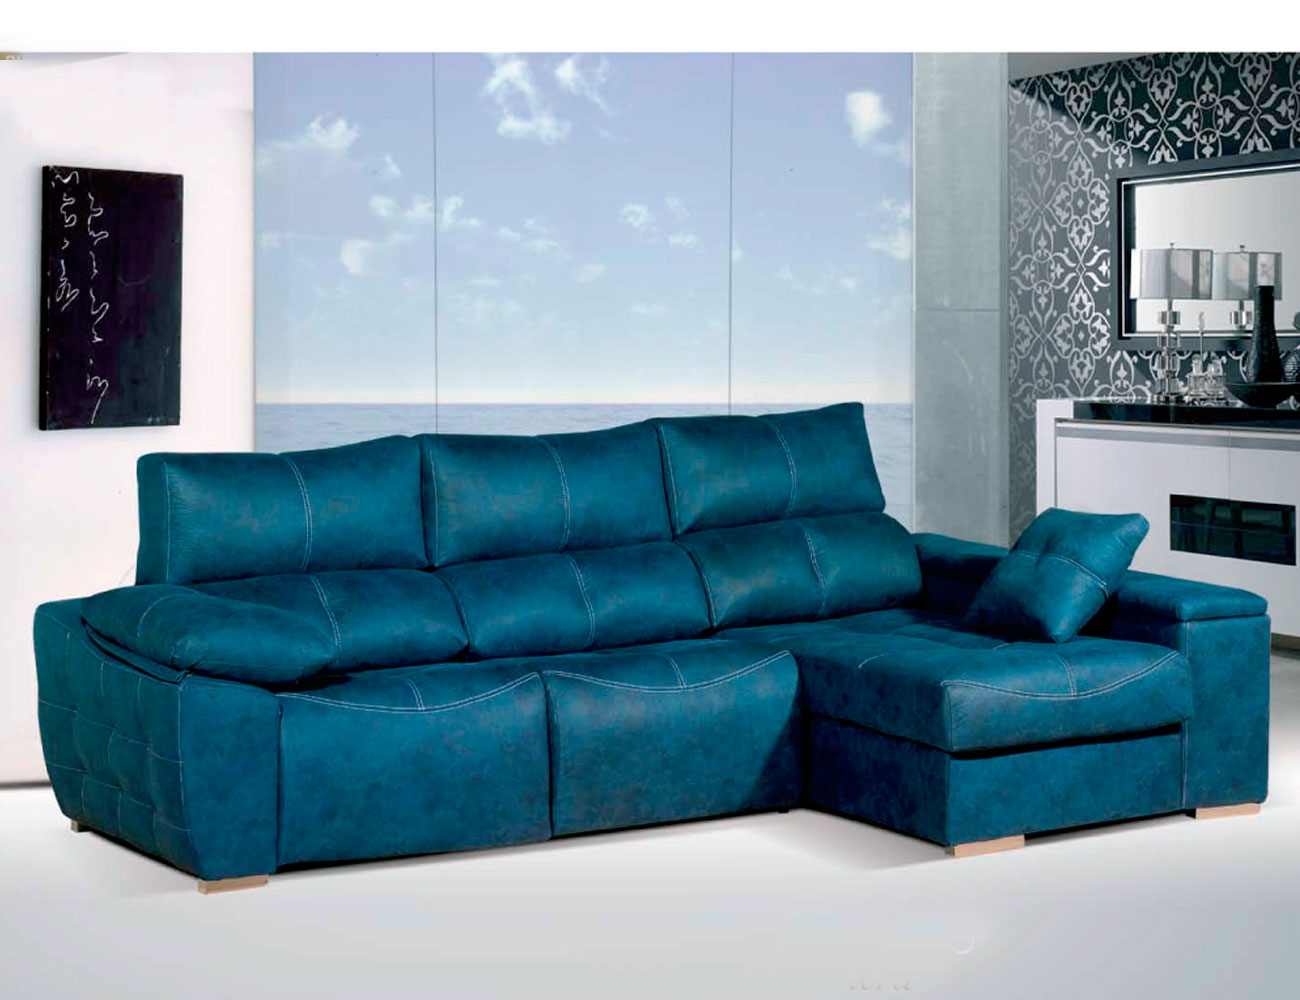 Sofa chaiselongue relax 2 motores anti manchas turquesa38